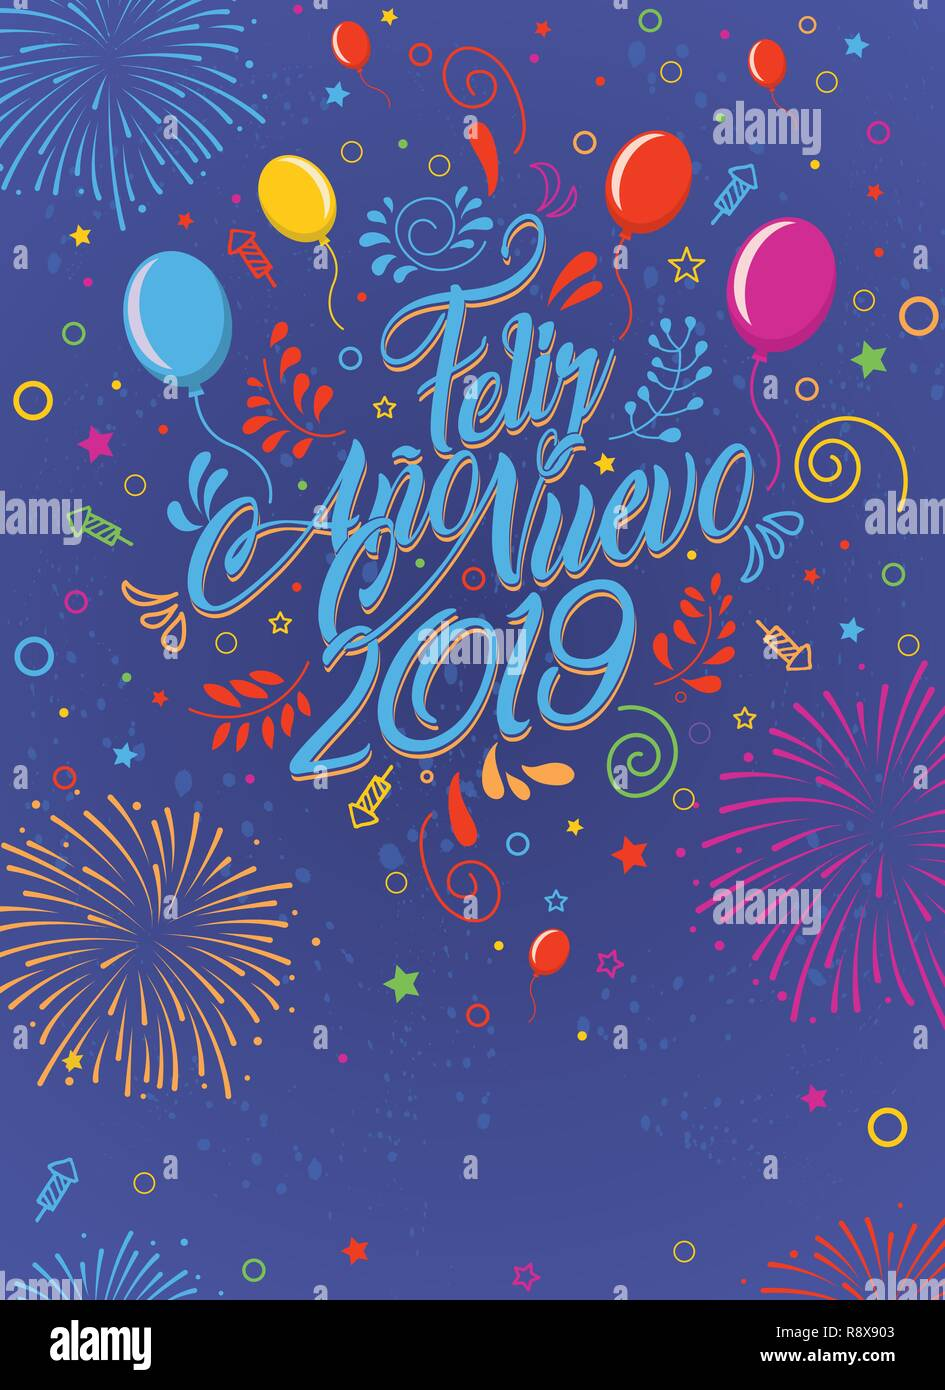 Happy New Year Greeting Card Messages